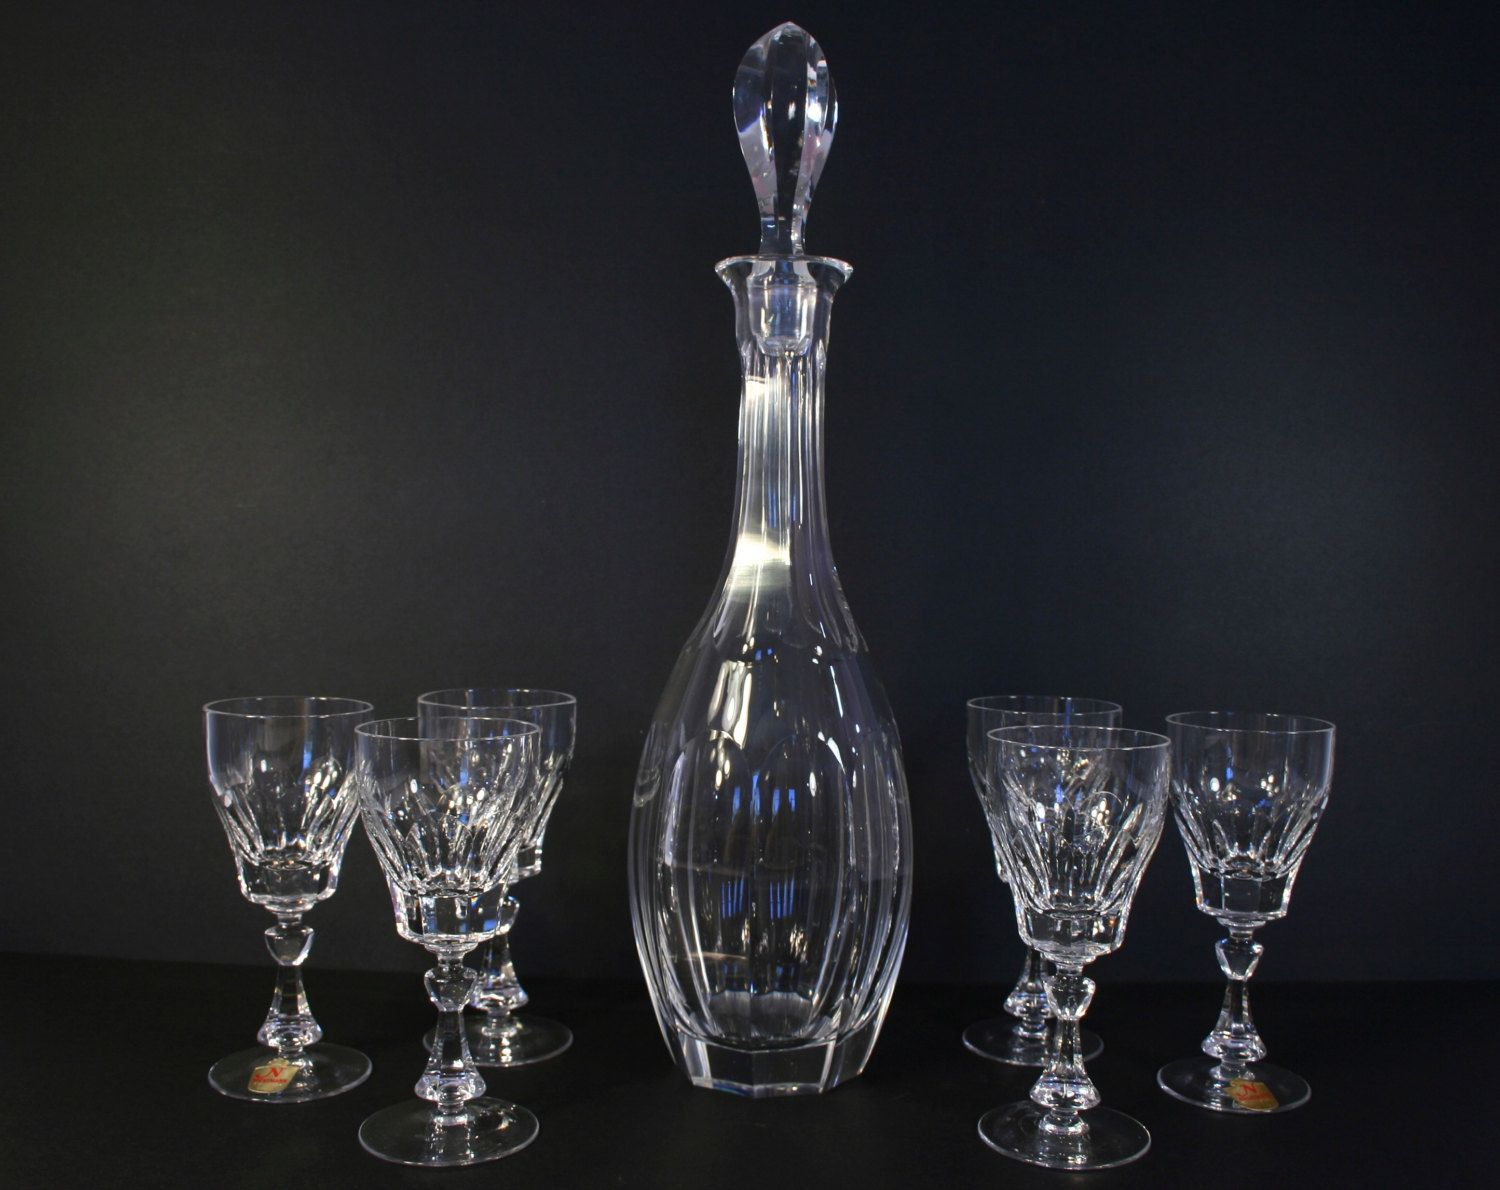 Vintage Nachtmann Bleikristall Crystal Decanter With Stopper And Six 6 Matching Crystal Port